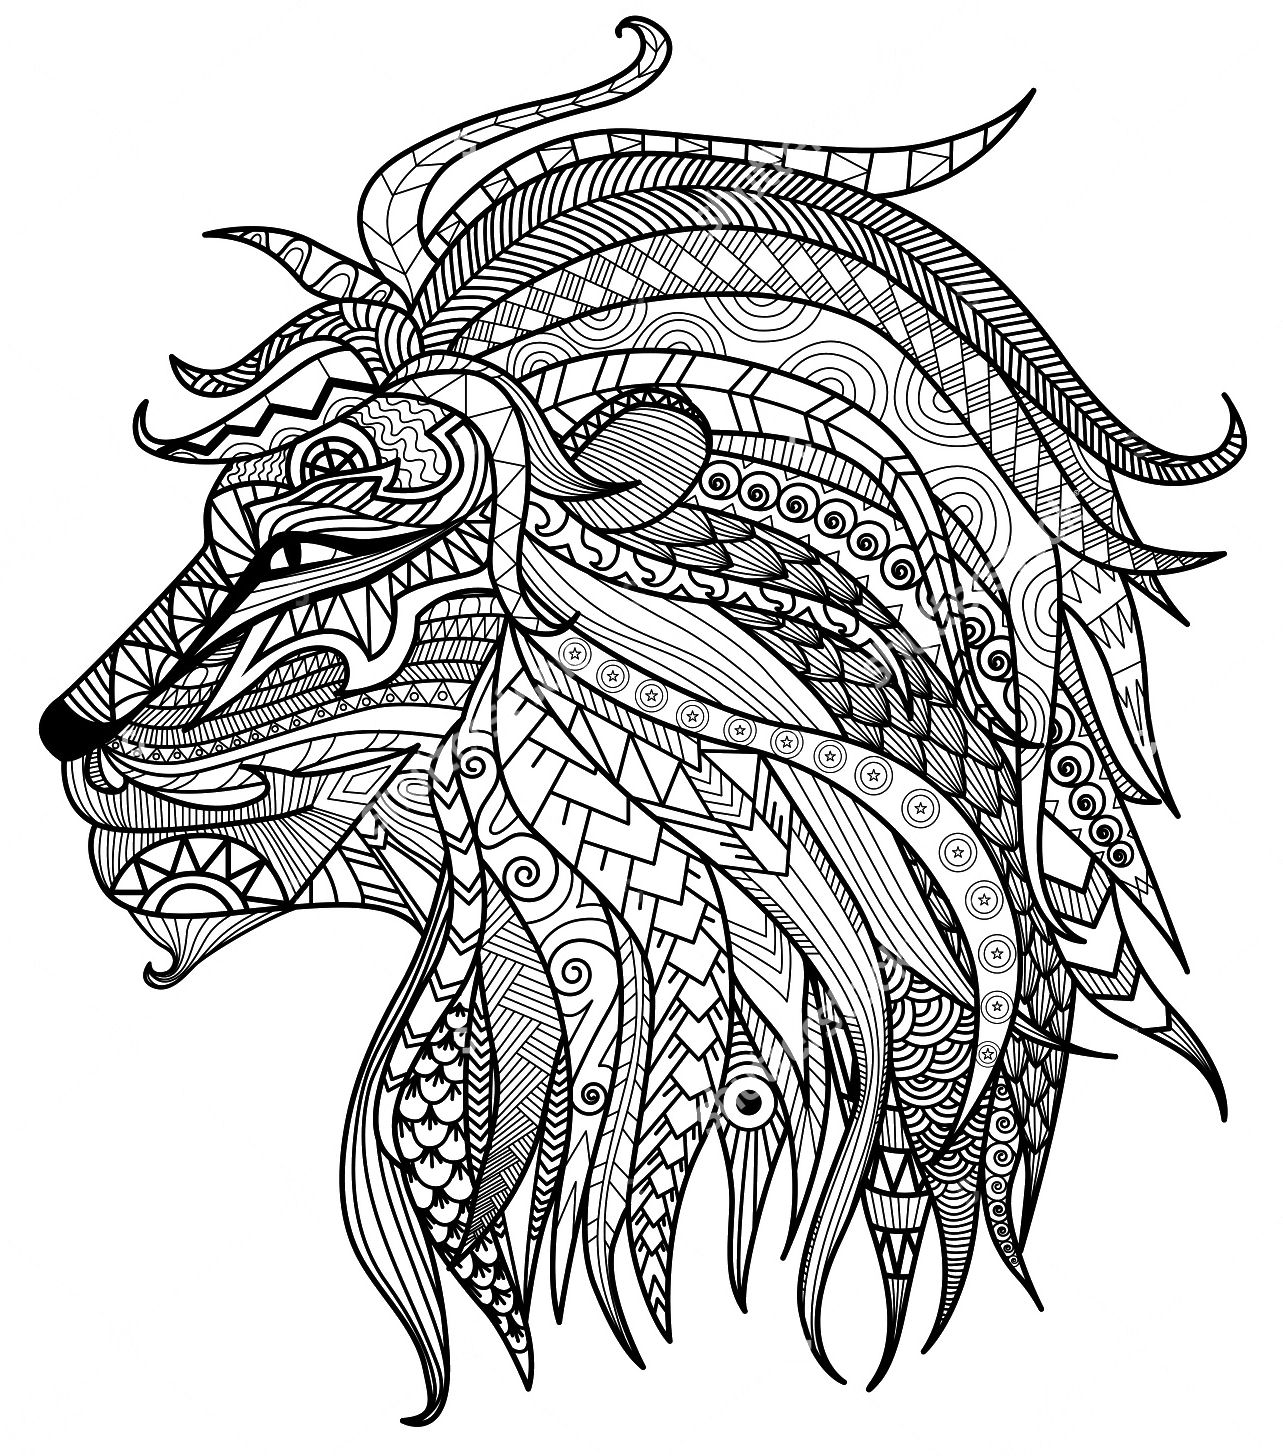 picture of a lion to color lion colour drawing at getdrawings free download lion picture a color of to